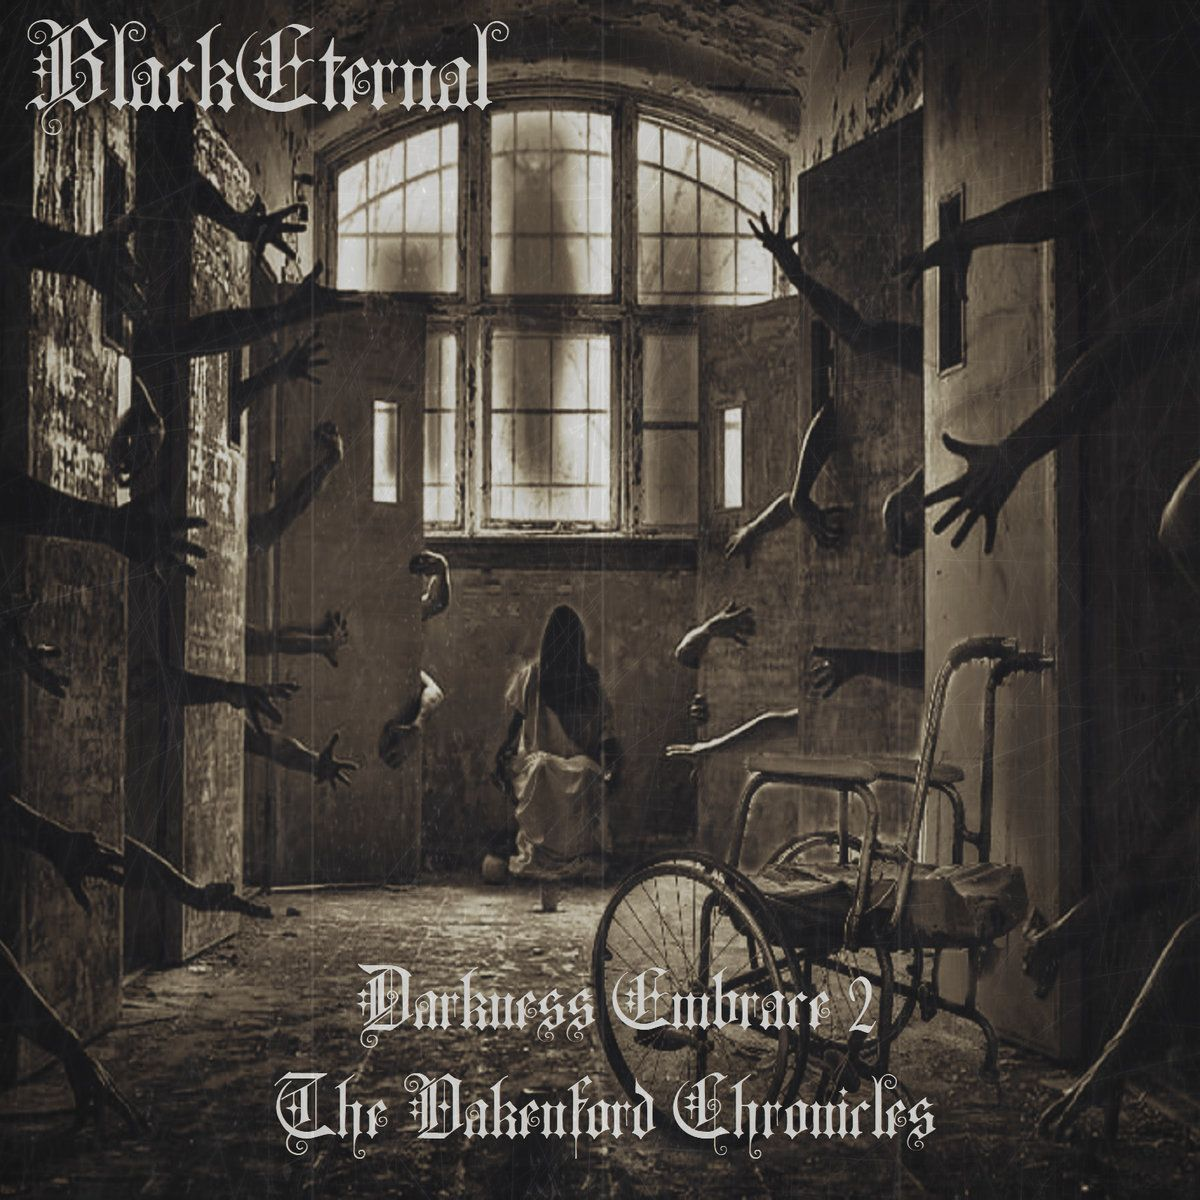 Review for Black Eternal - Darkness Embrace II: The Oakenford Chronicles